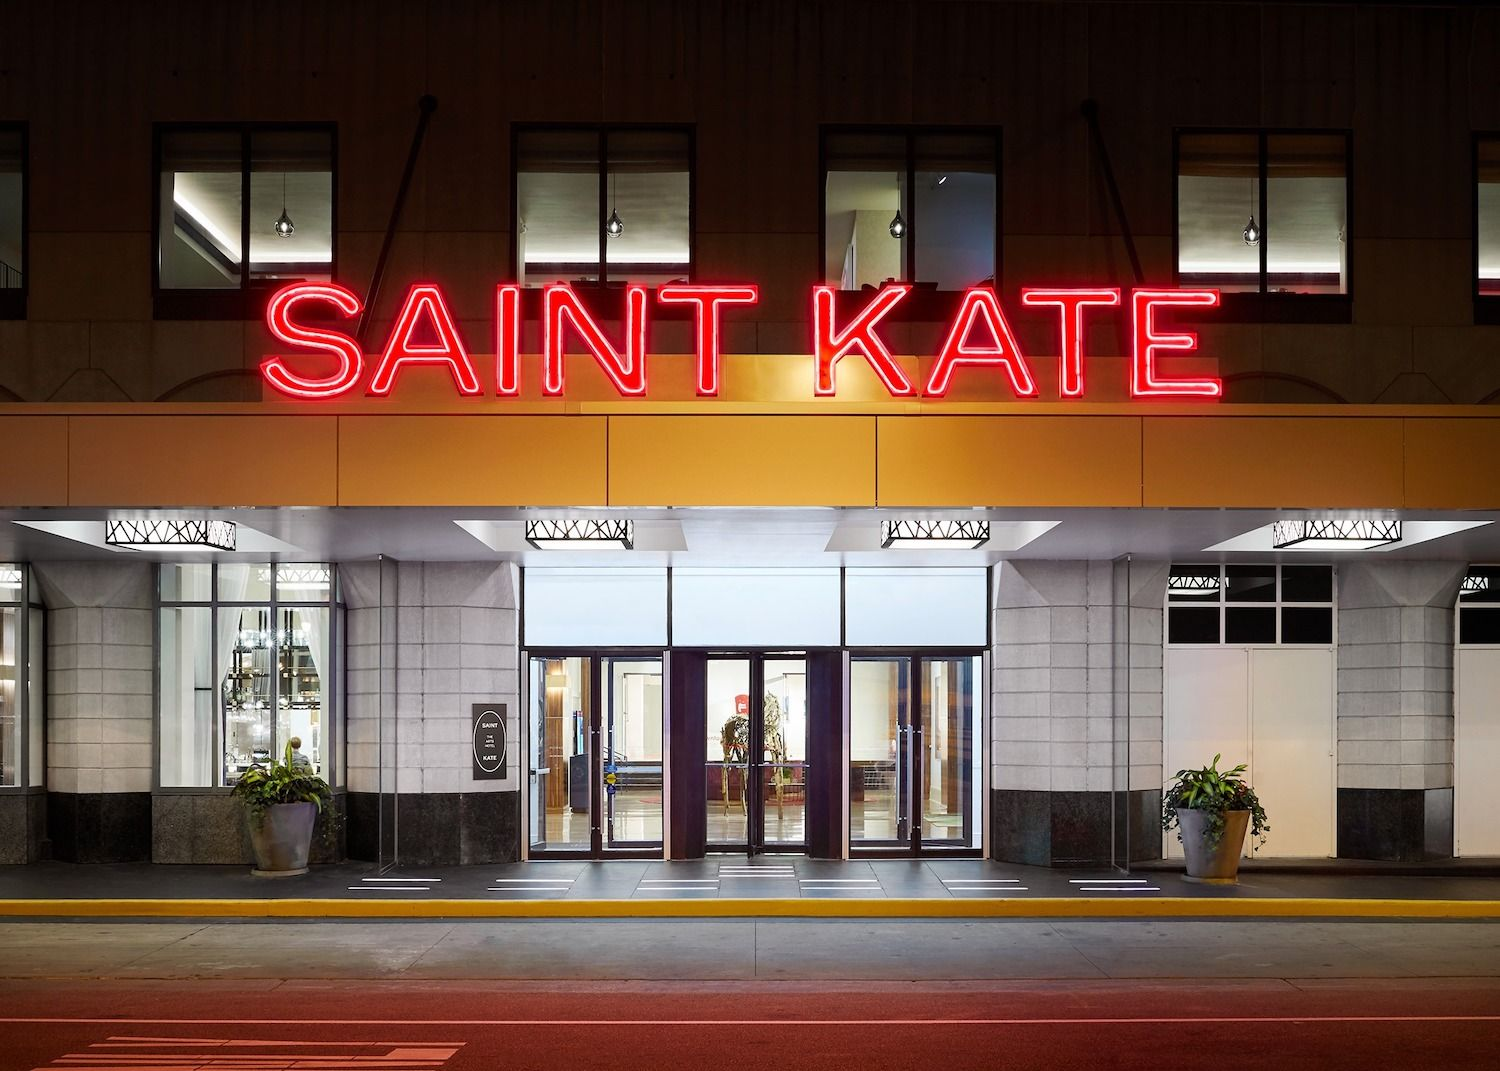 Exterior of the Sainte Kate Hotel in Milwaukee